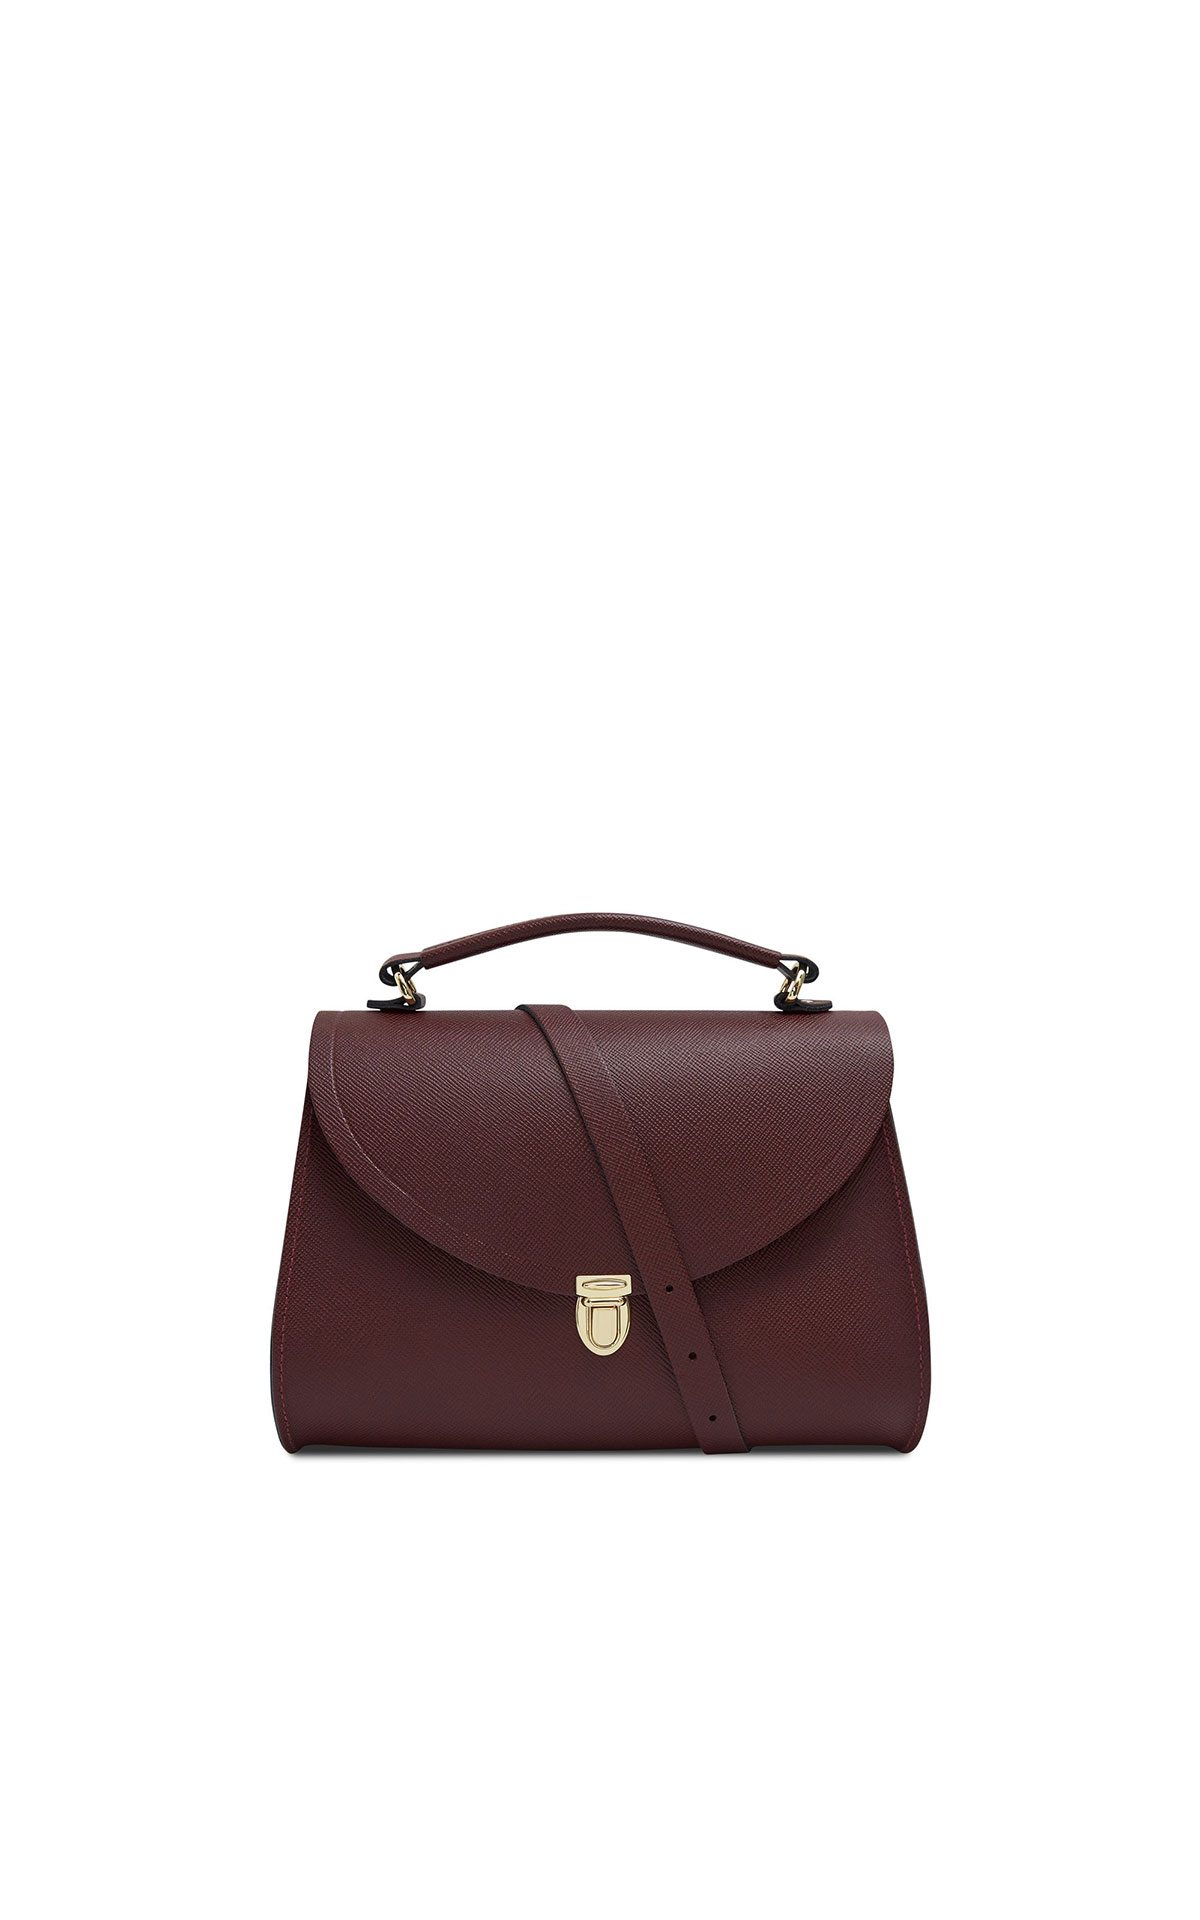 The Cambridge Satchel Company Poppy bag mustard saffiano from Bicester Village